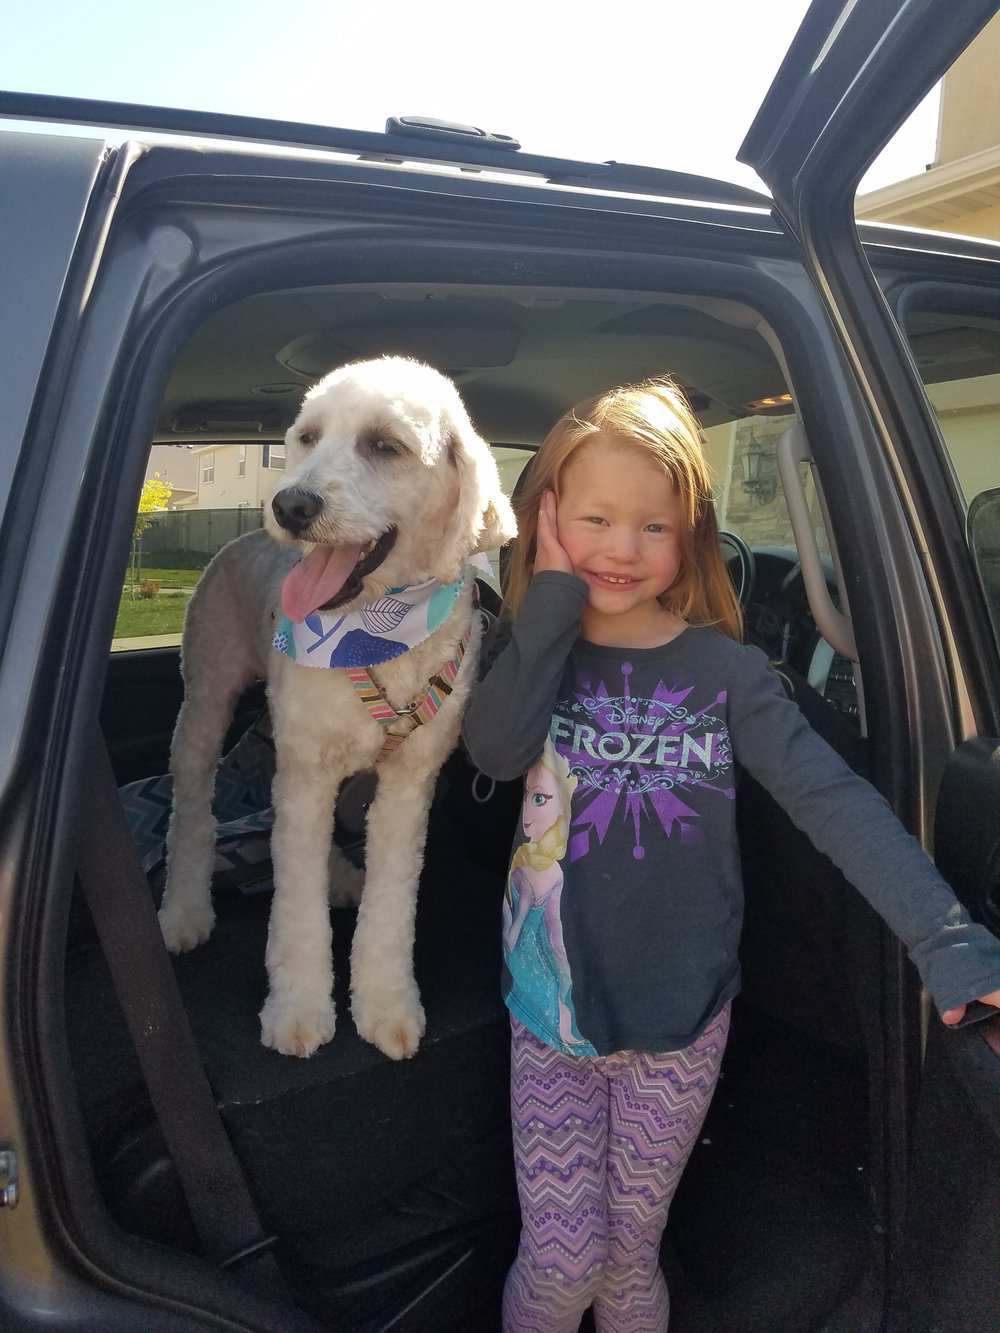 Here is Nala with my little 4-year-old, and she is just getting home from La Petite dog grooming! She has a curly coat so we do have her hair cut every few months but we also like to grow it long and she looks adorable and fluffy like a marshmallow. -